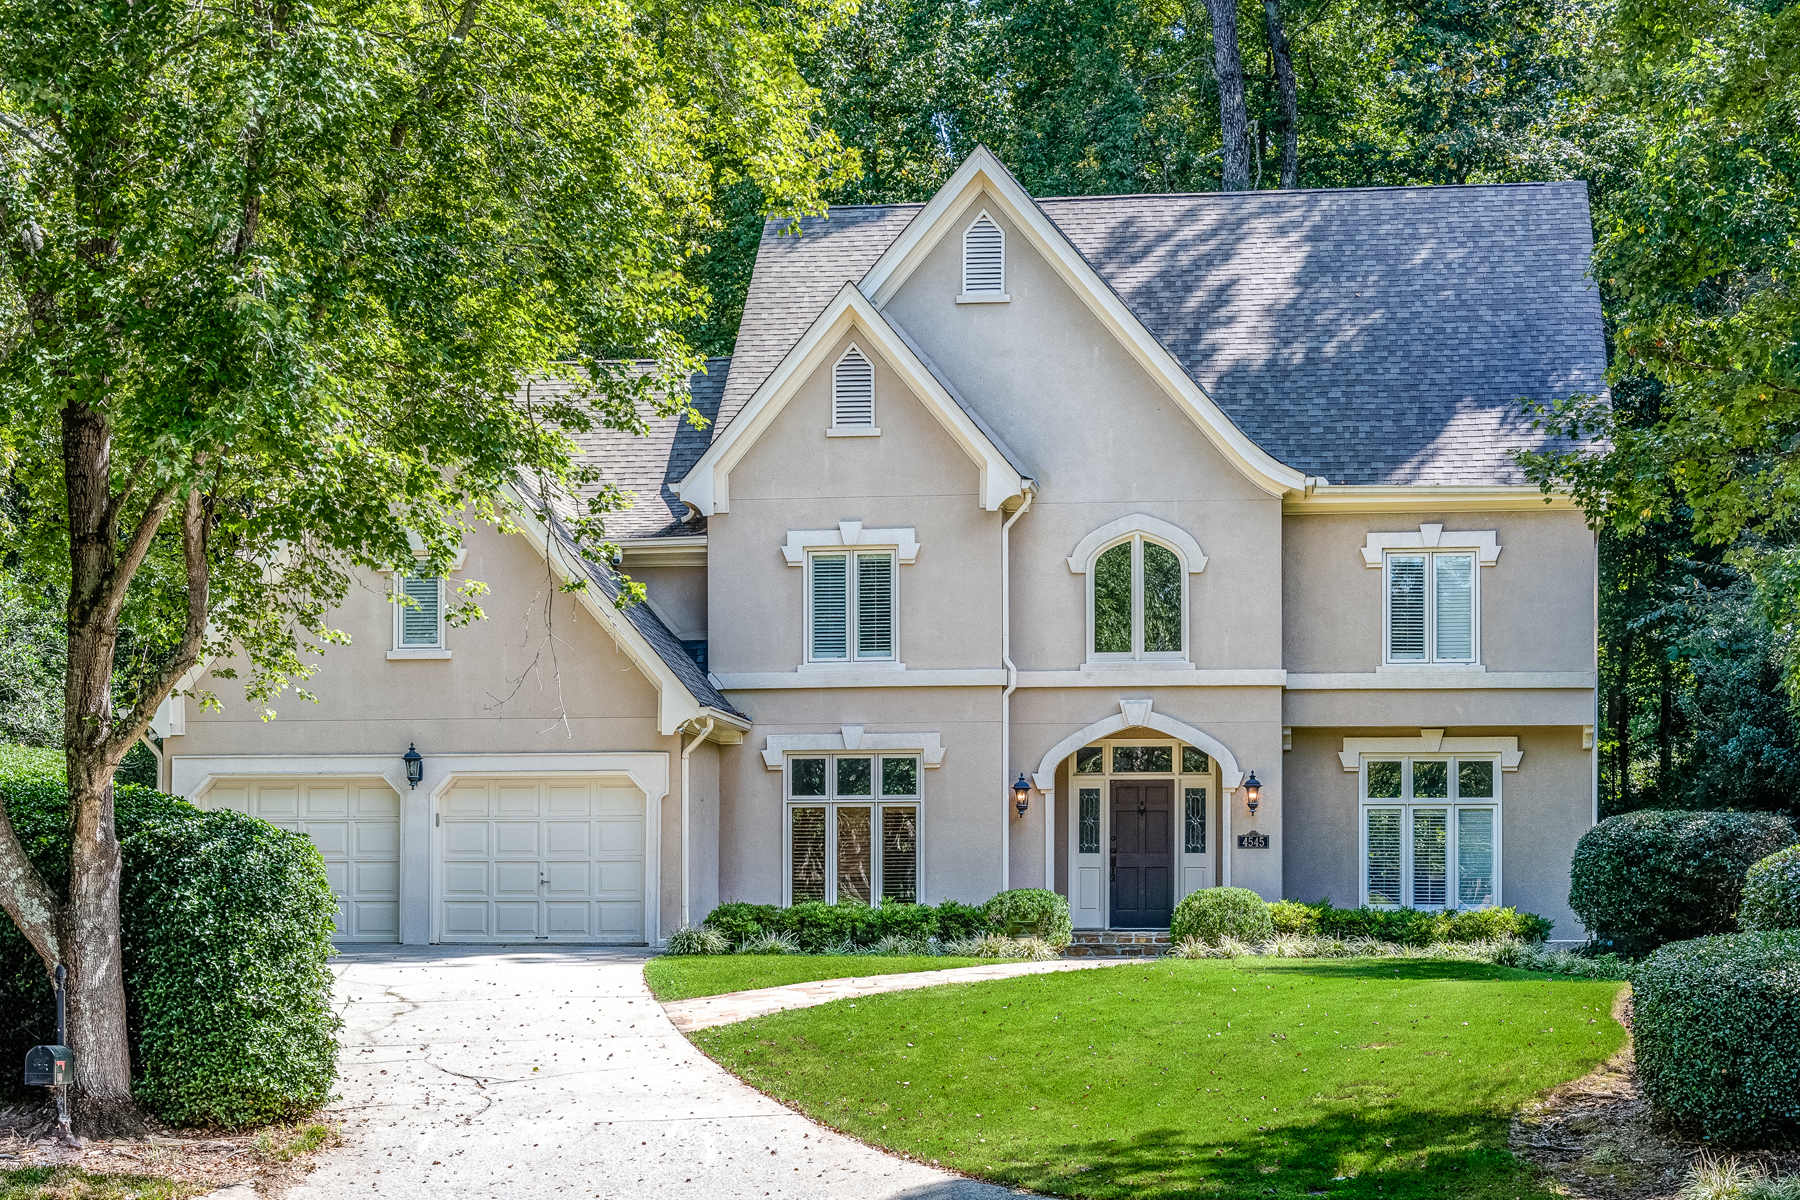 Single Family Home for Sale at Fantastic Location 4545 Crestwicke Pointe Sandy Springs, Georgia 30319 United States